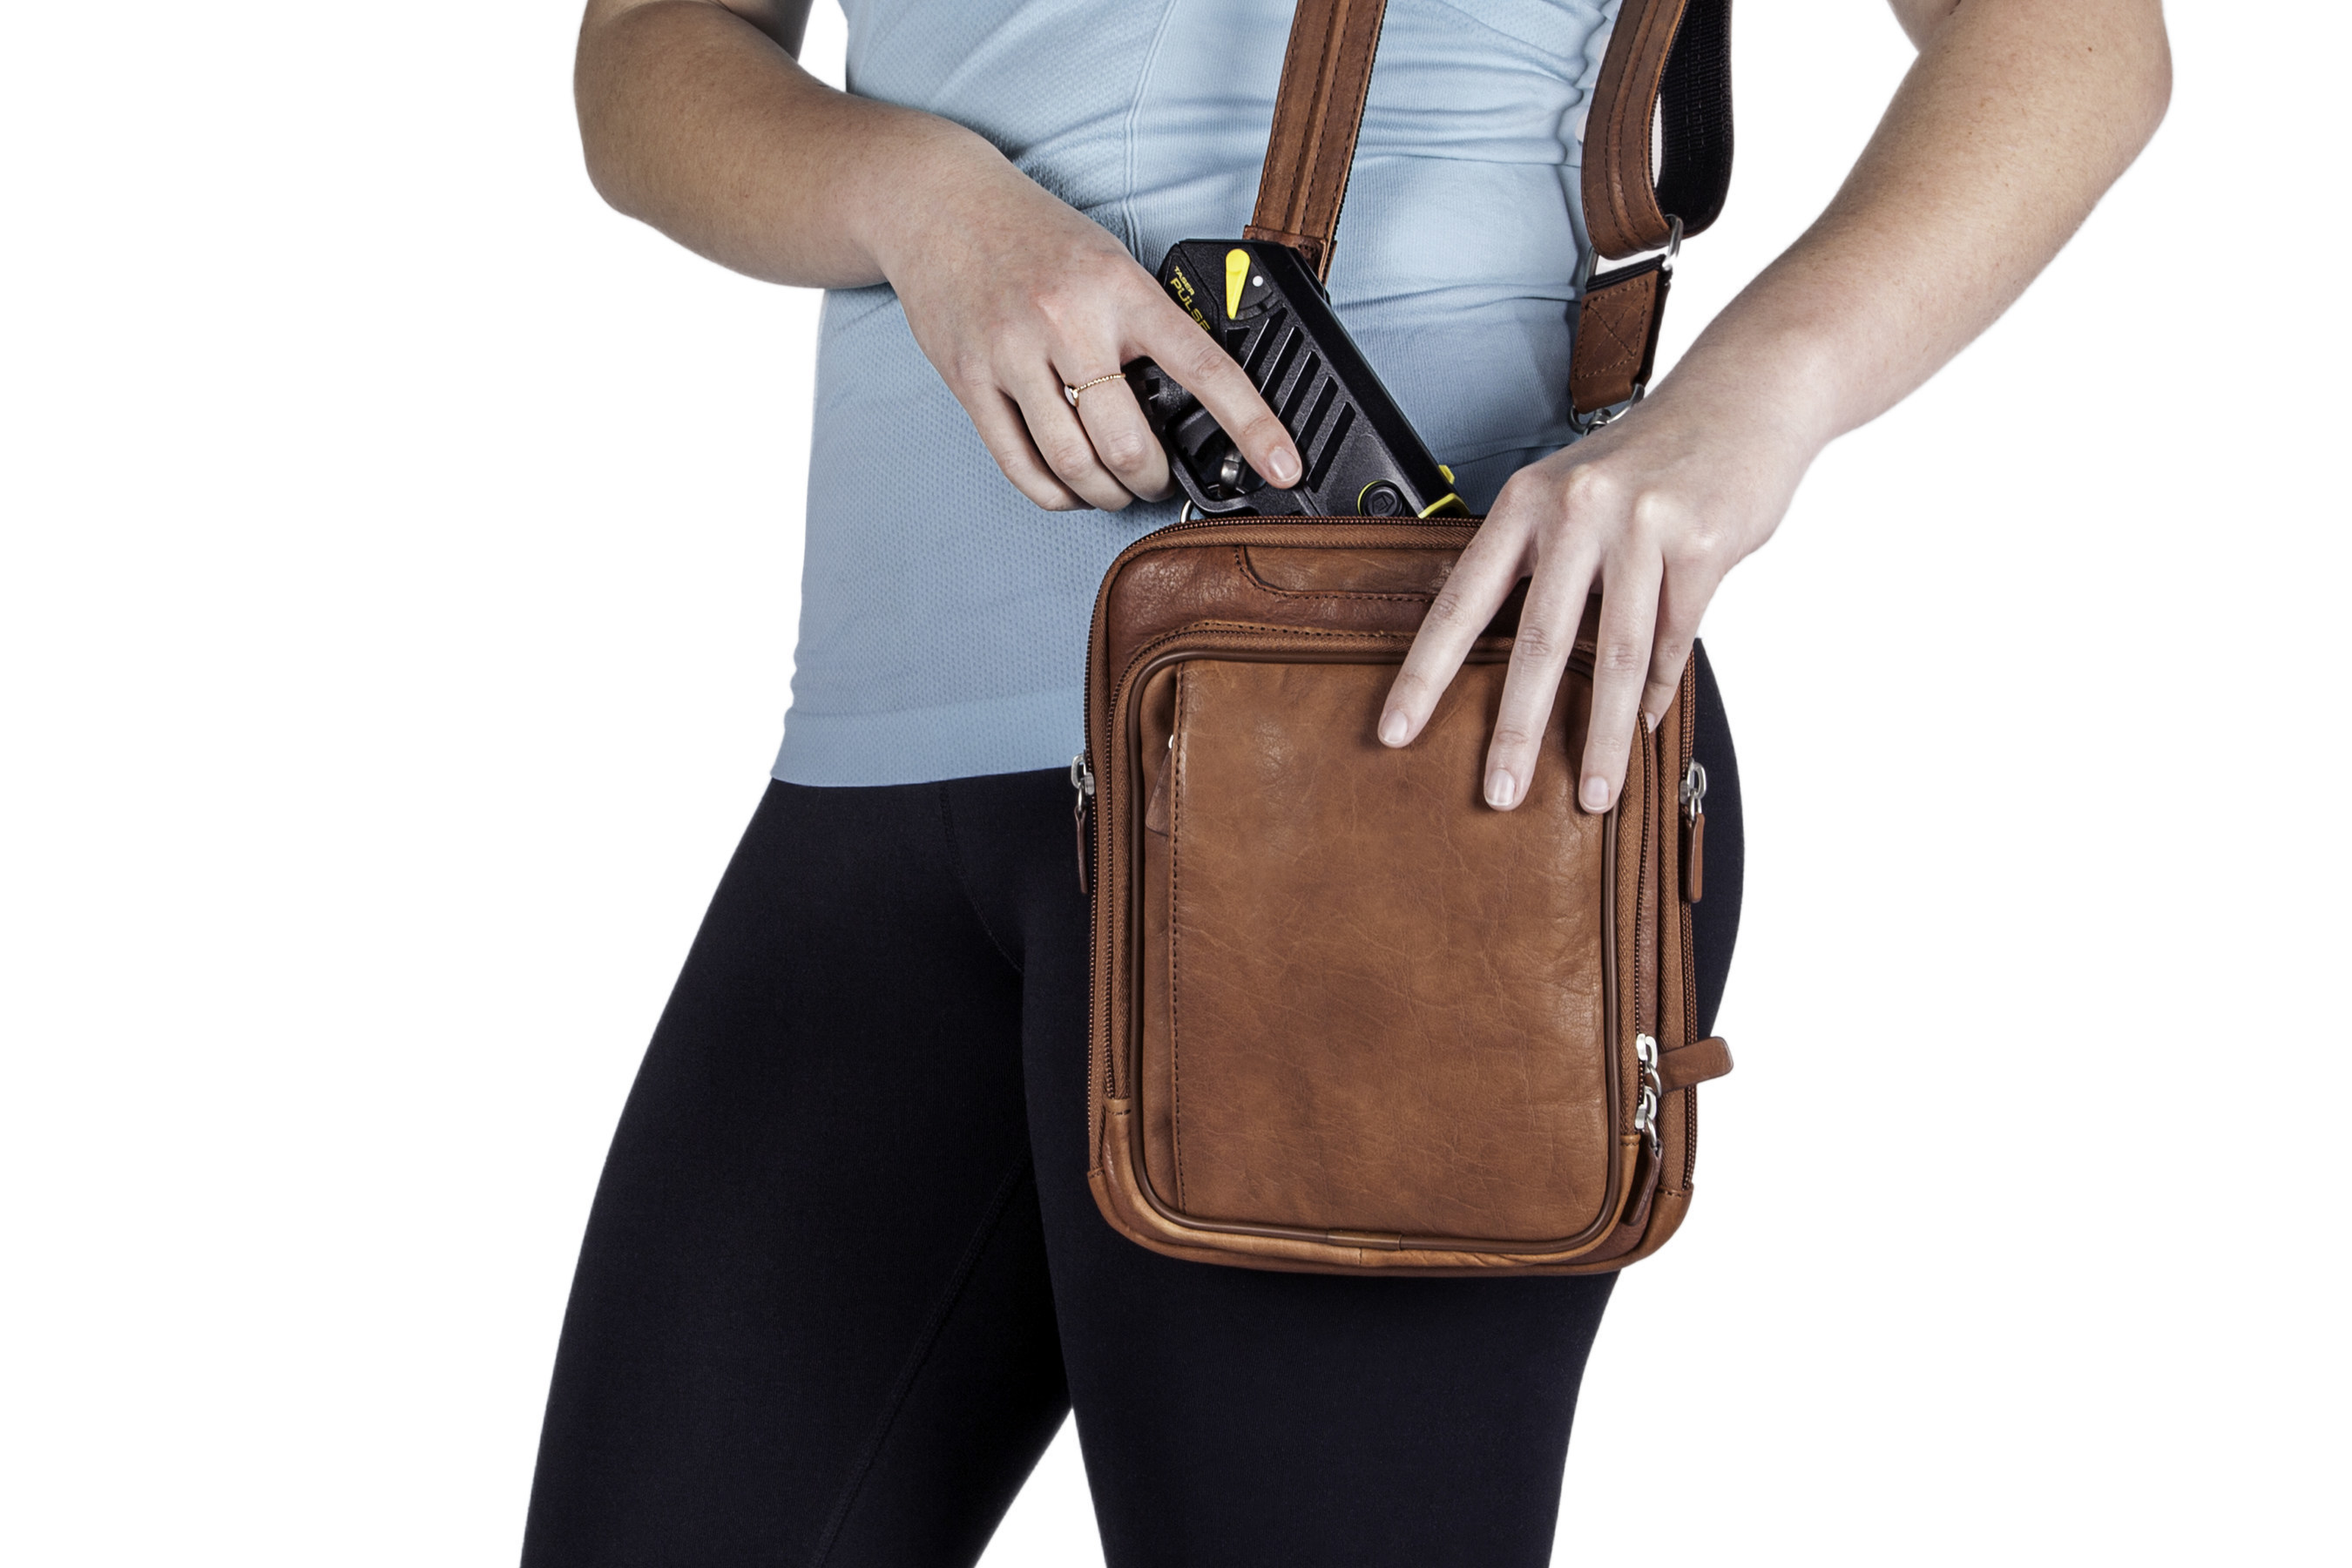 The new TASER Pulse conducted electrical weapon for consumers is the smallest TASER weapon ever made and fits easily in a purse.